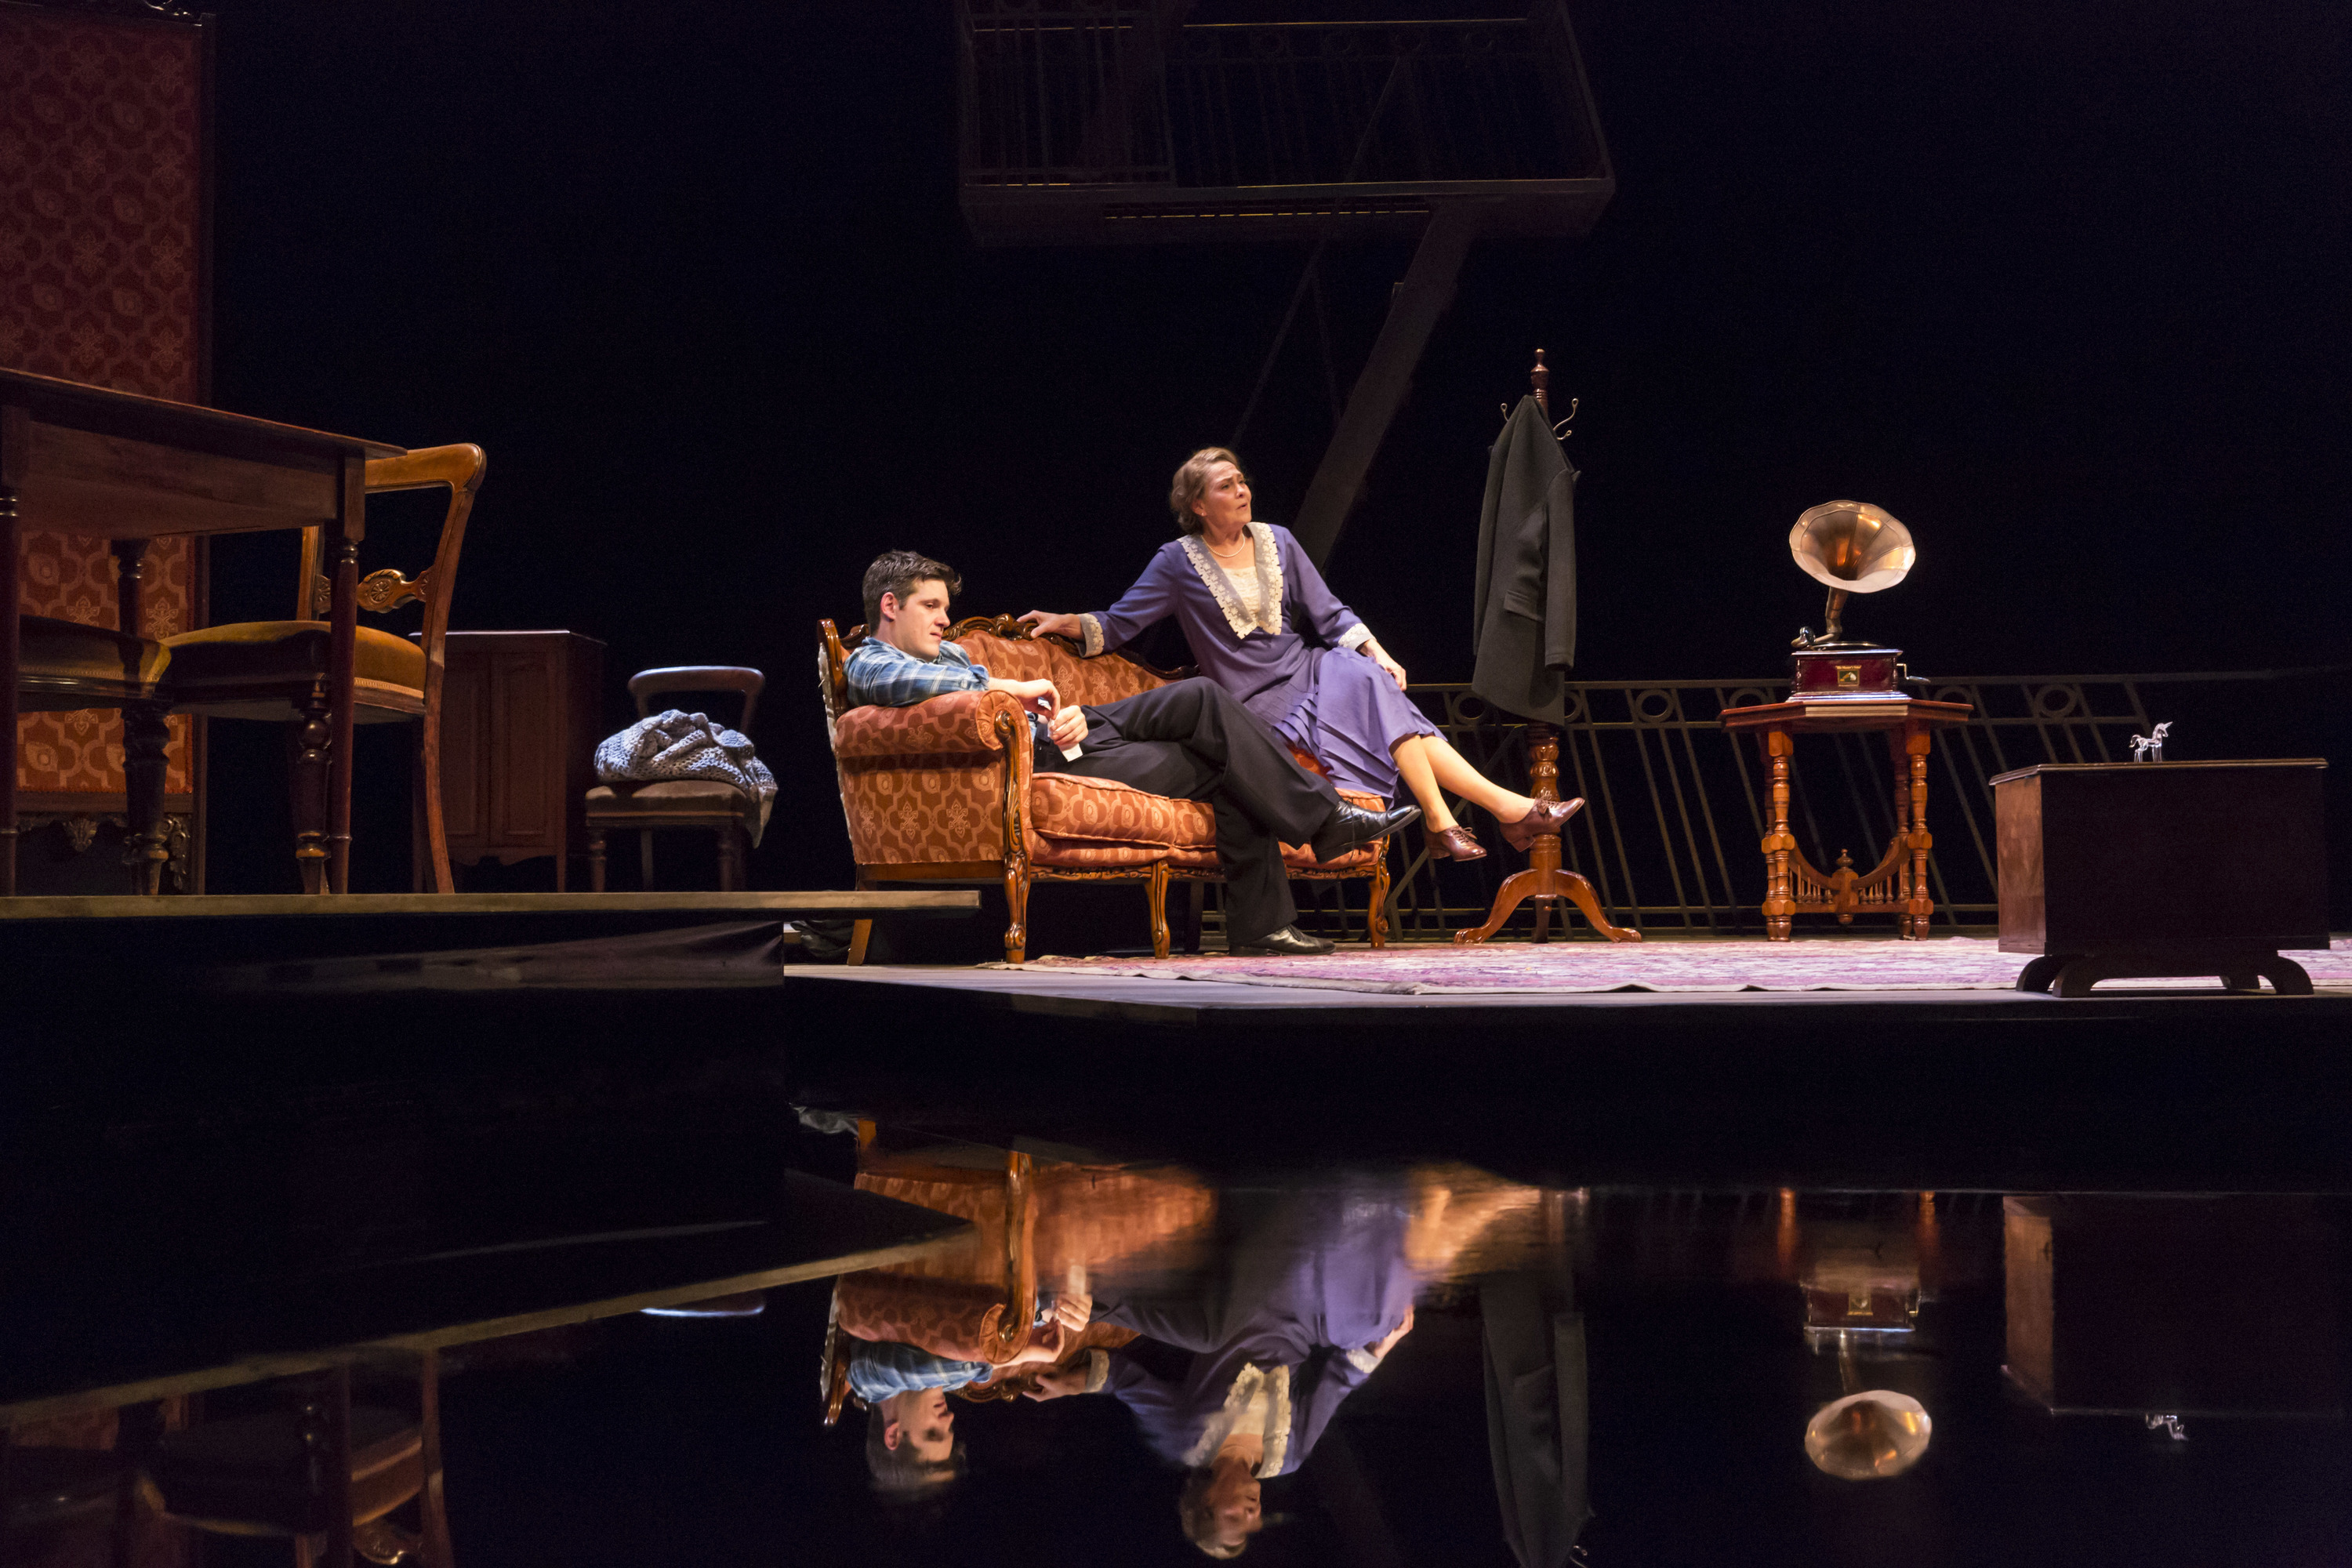 'The Glass Menagerie' by Tennessee Williams